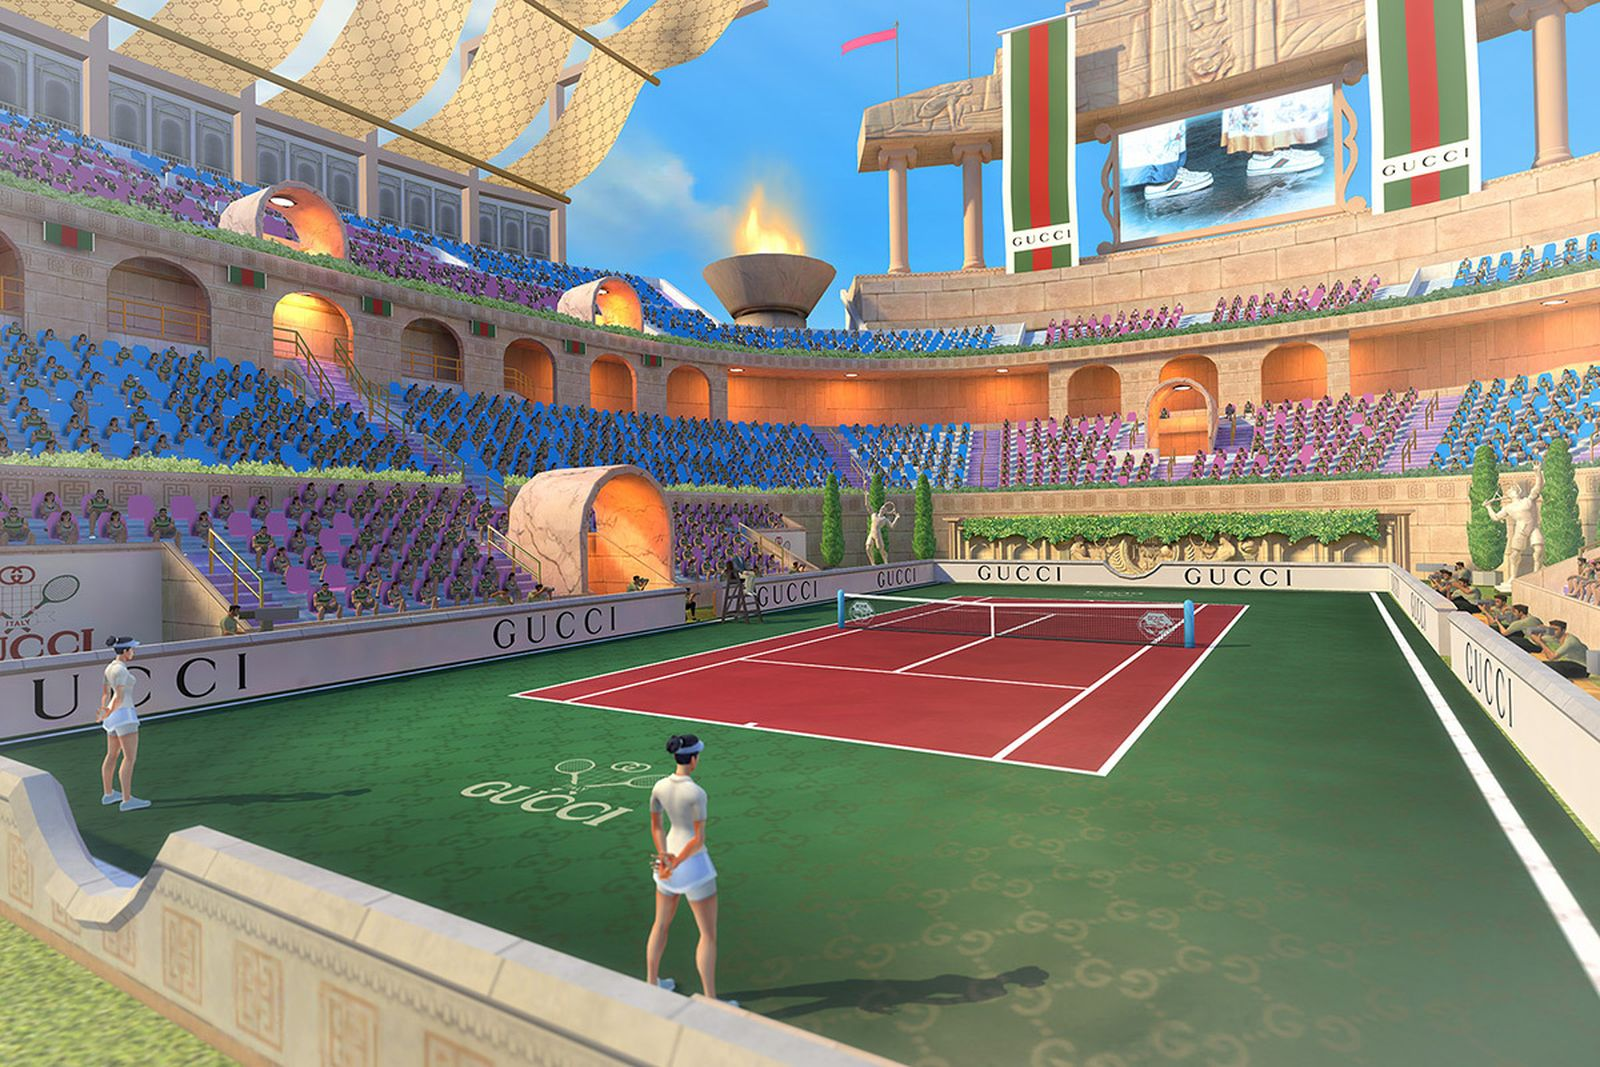 An image depicting gameplay from Tennis Clash